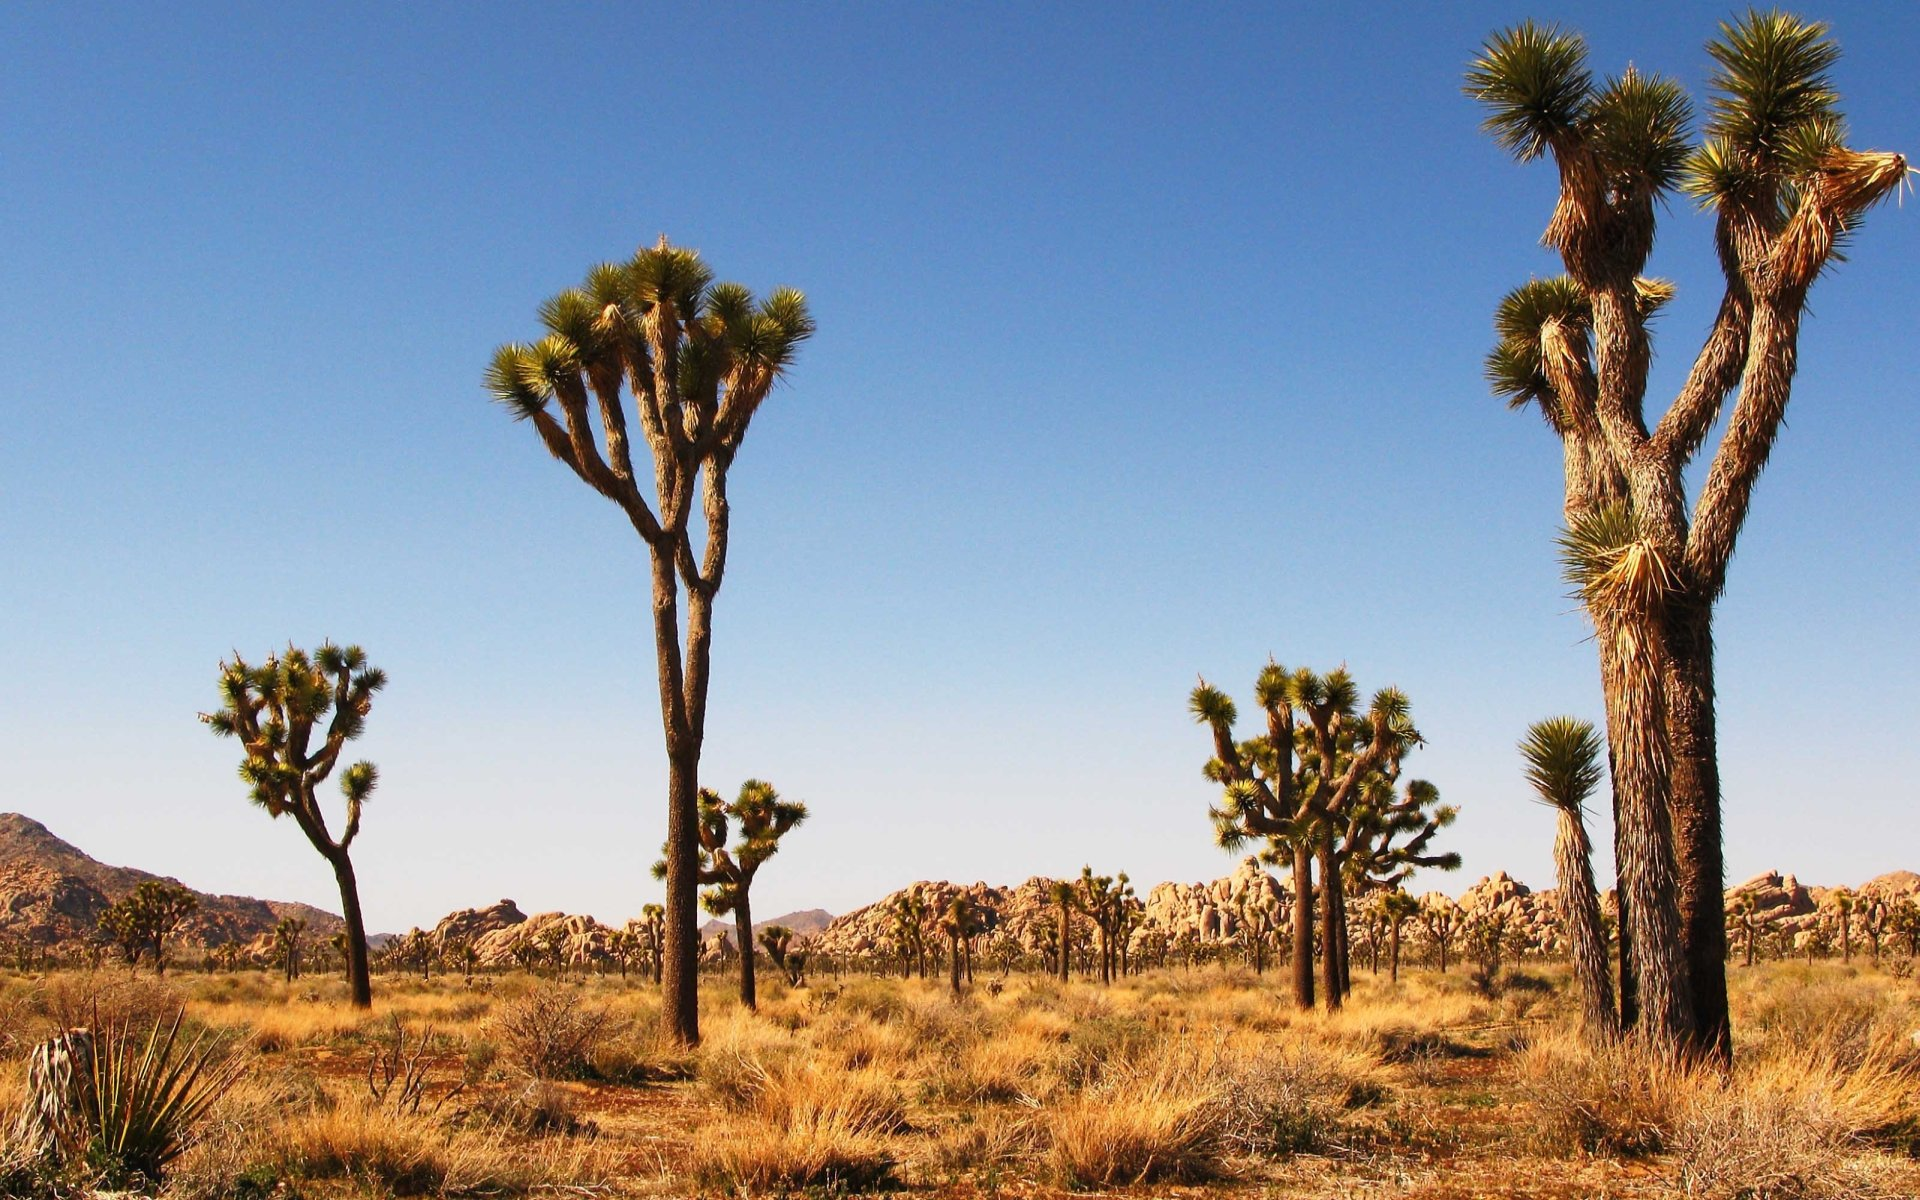 Download Hd 1920x1200 Joshua Tree National Park Desktop Background Id 254754 For Free